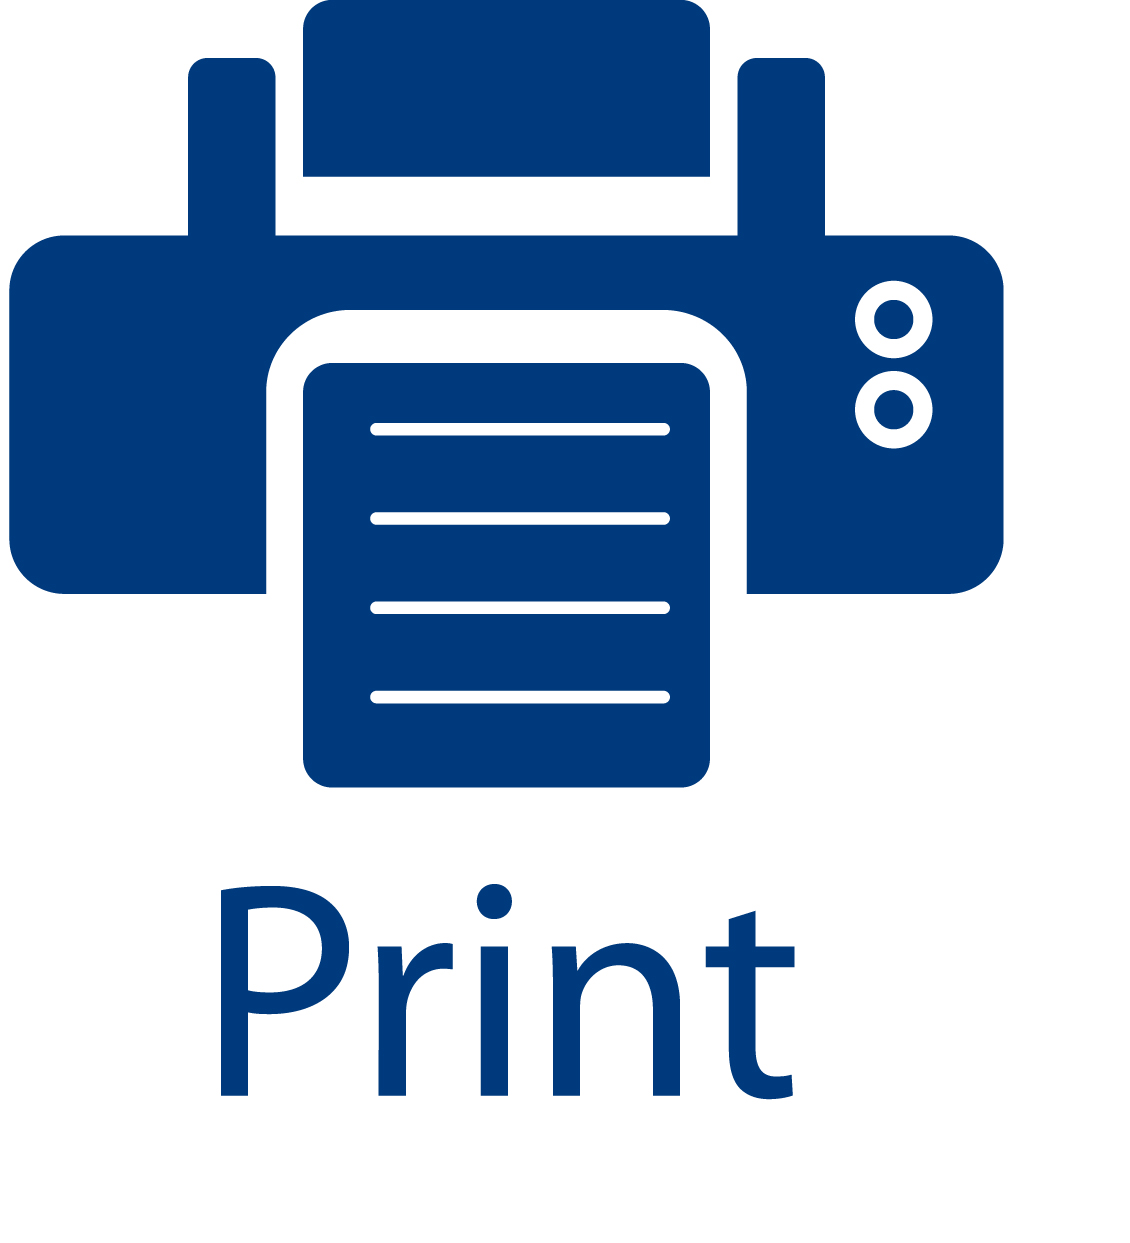 5 Print Button Icon Images